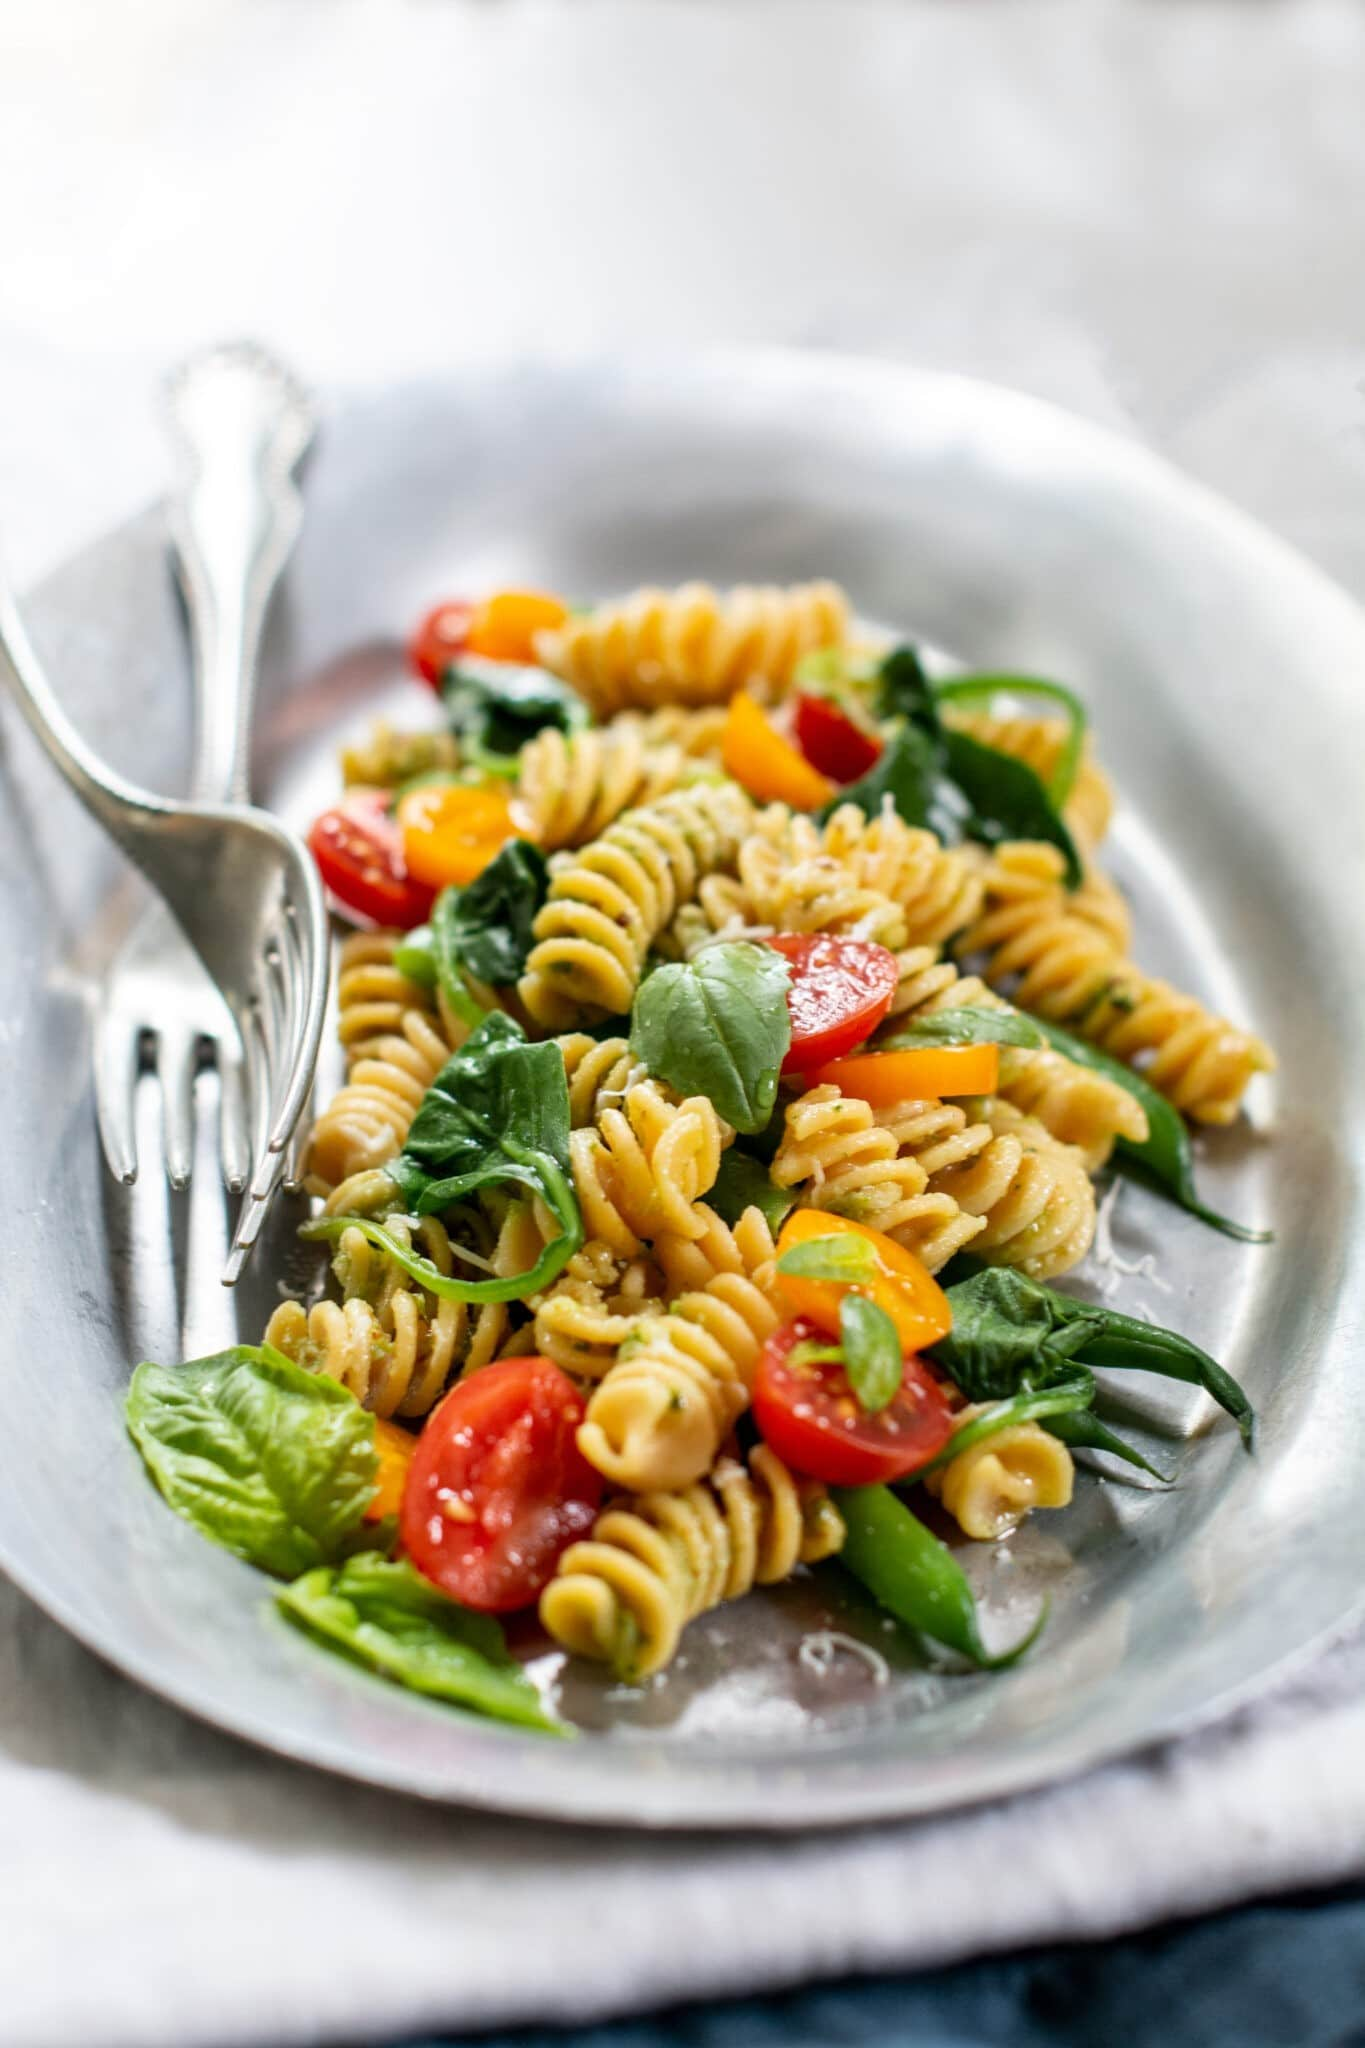 Almond Pesto with easy gluten free pasta